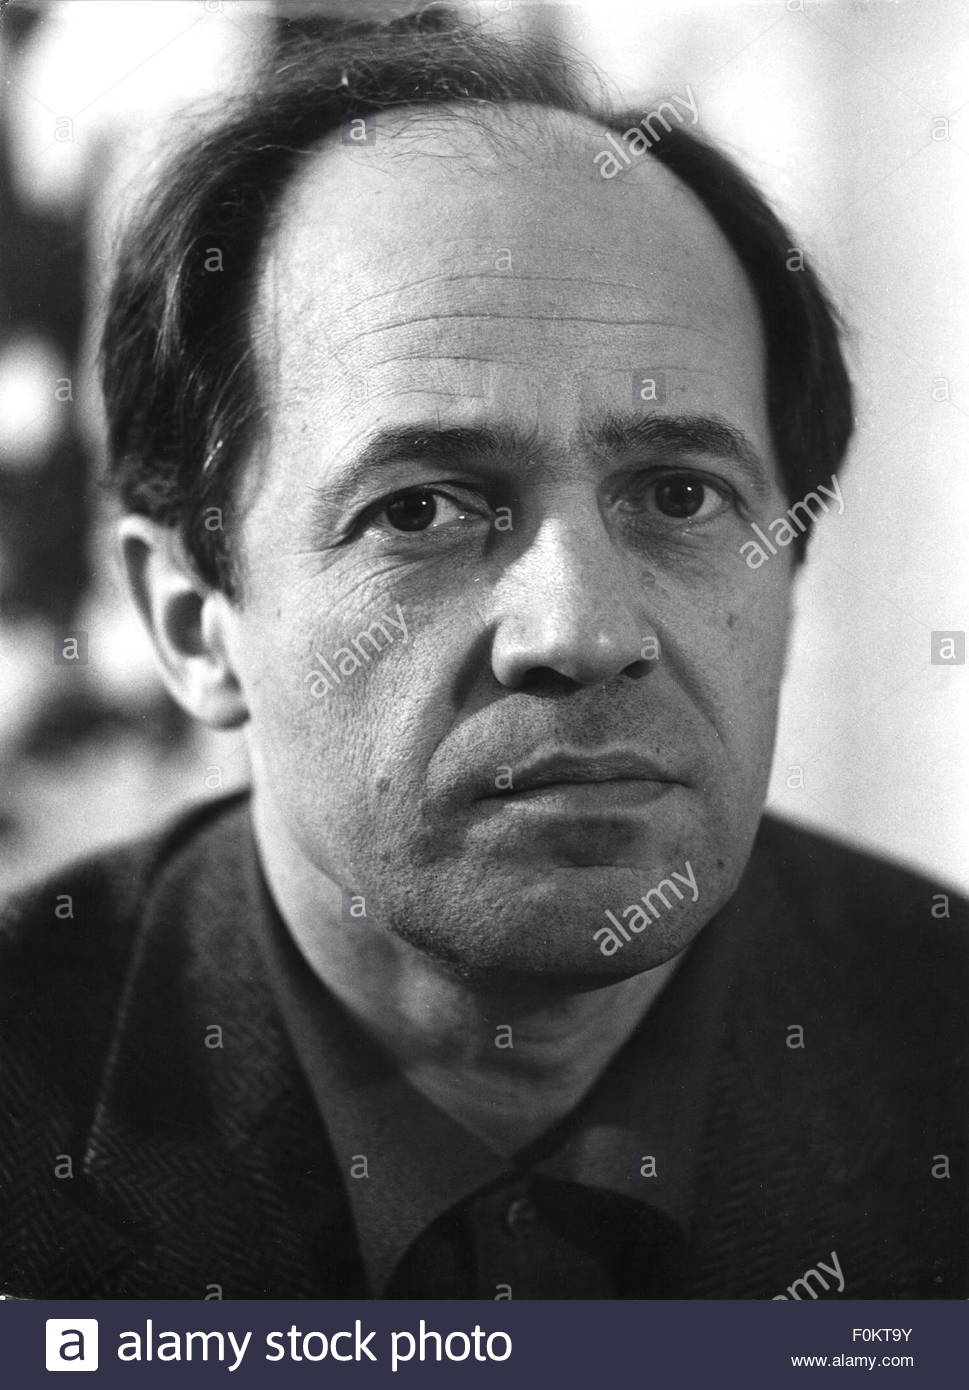 Boulez, Pierre, 25.3.1925 - 5.1.2016, French composer and conductor, since 1969, principal conductor of the New - Stock Image